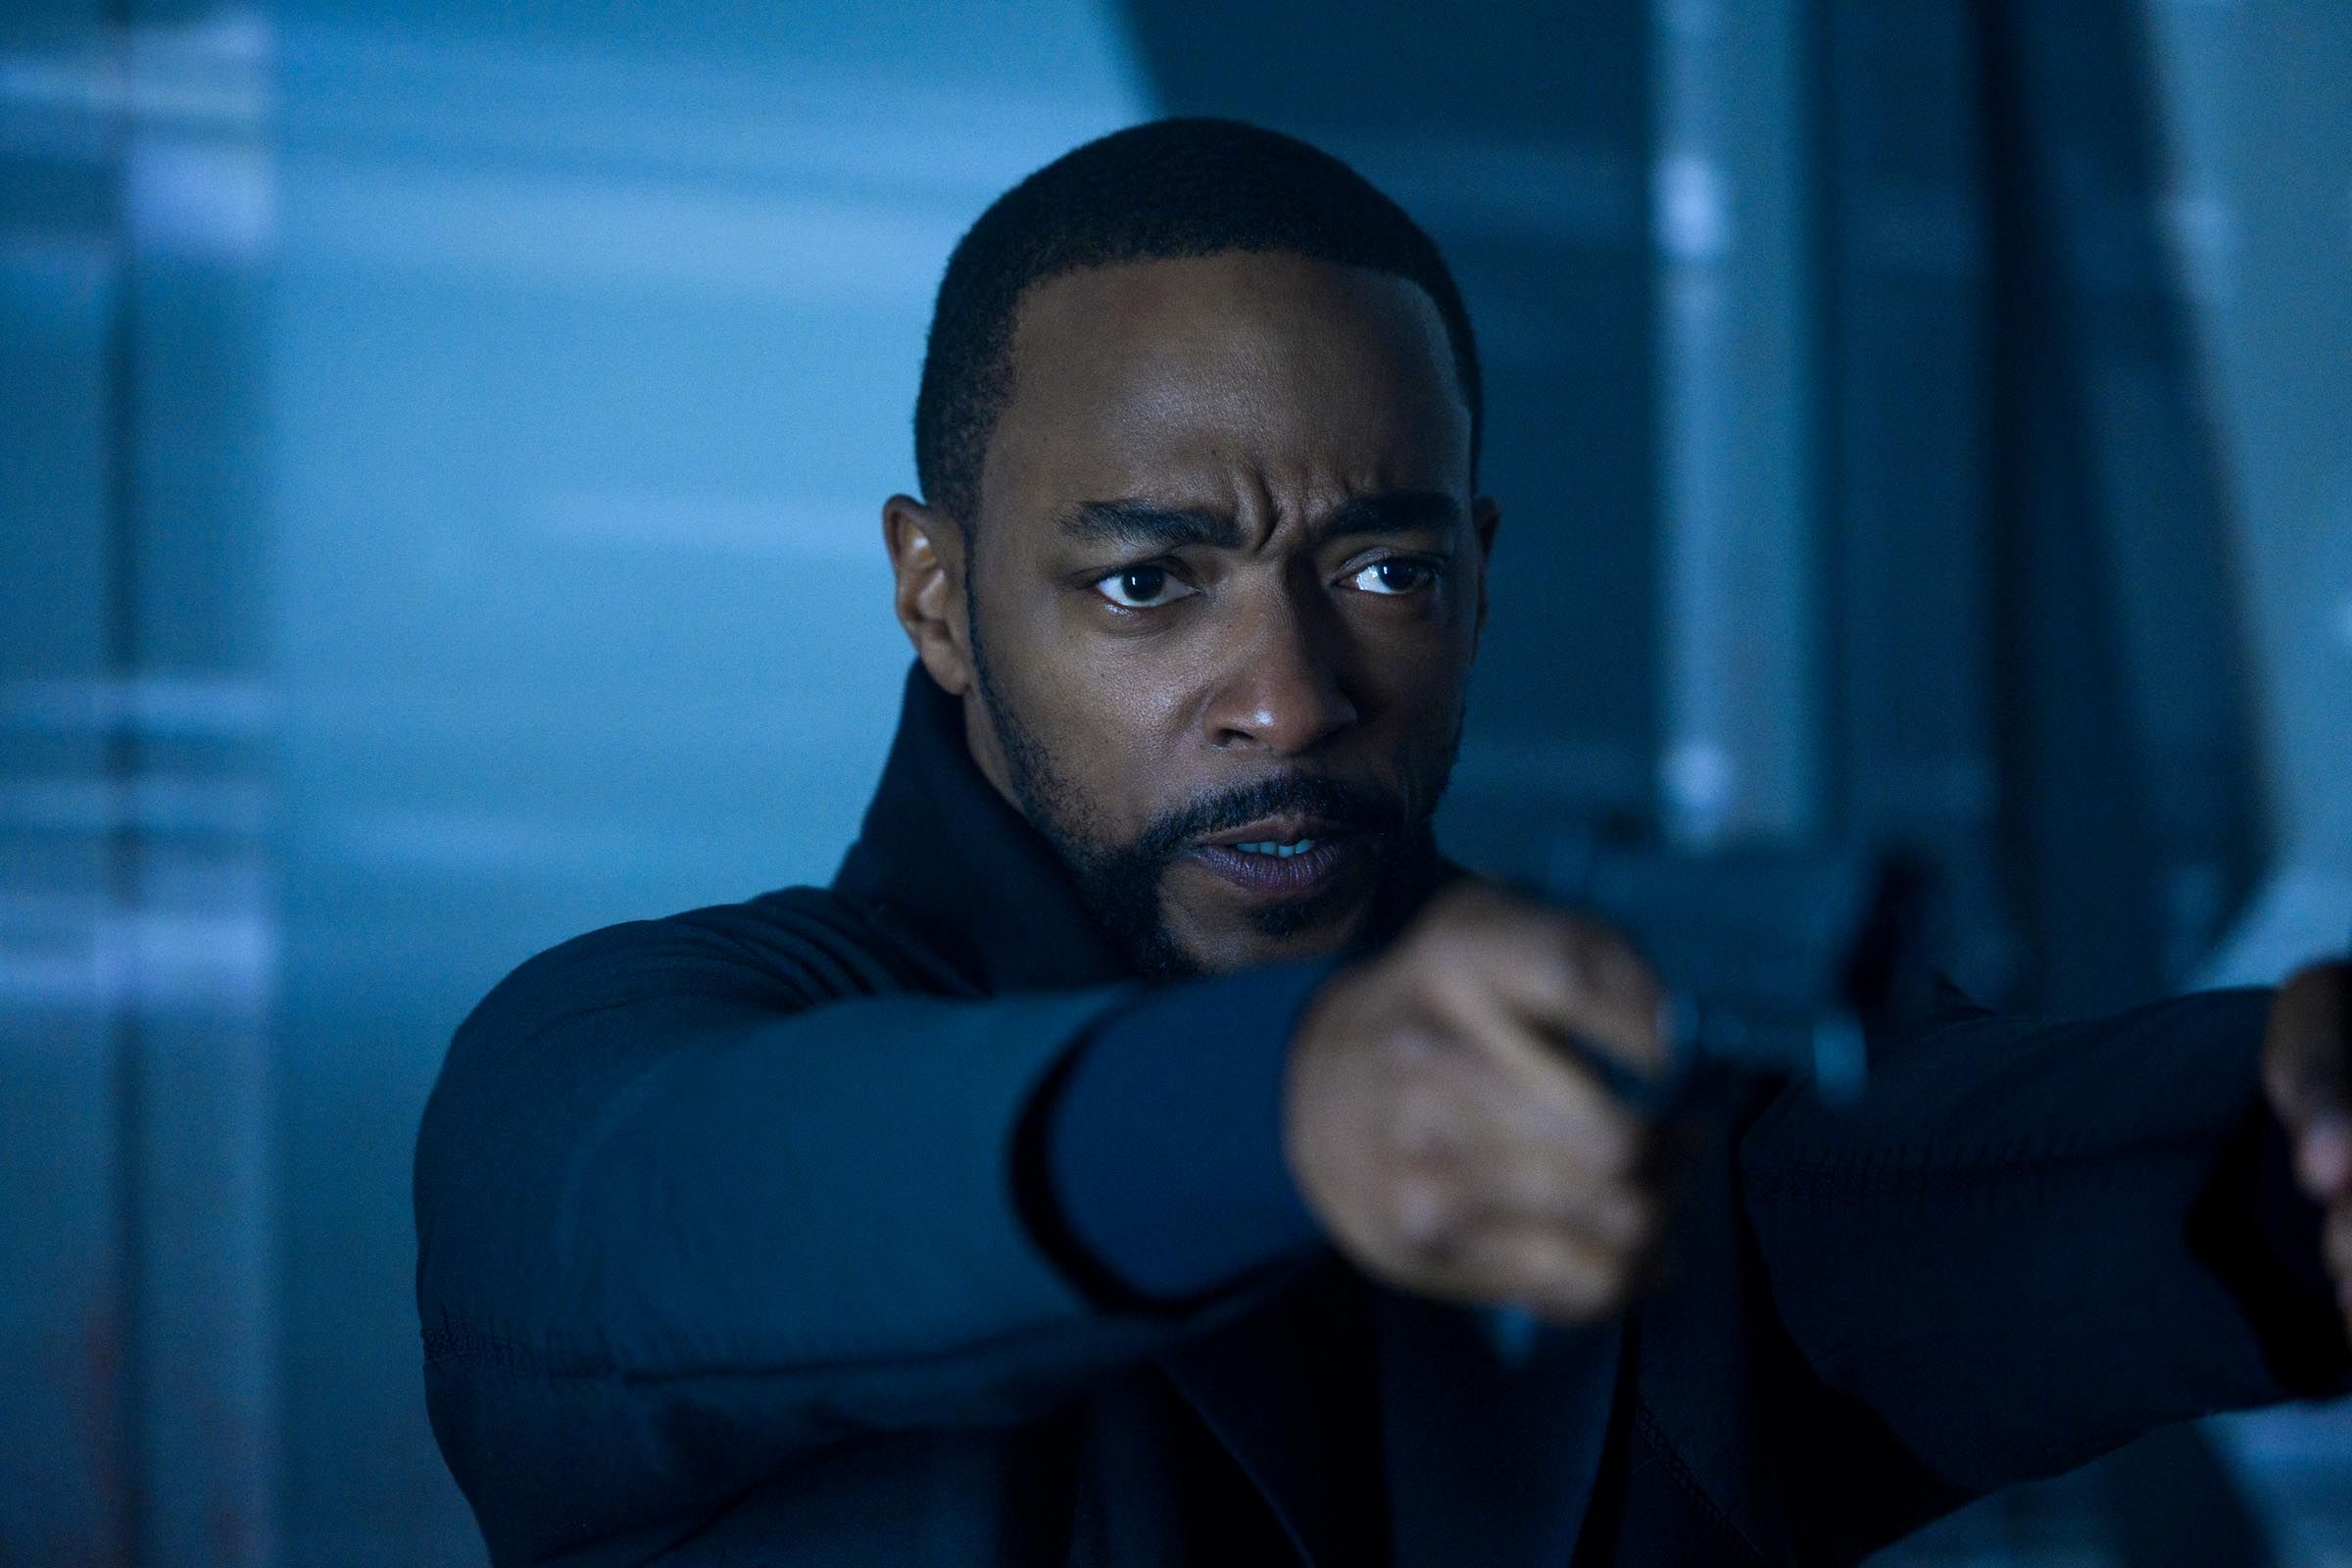 Altered Carbon Season 2 Teaser Uploads First Look At Anthony